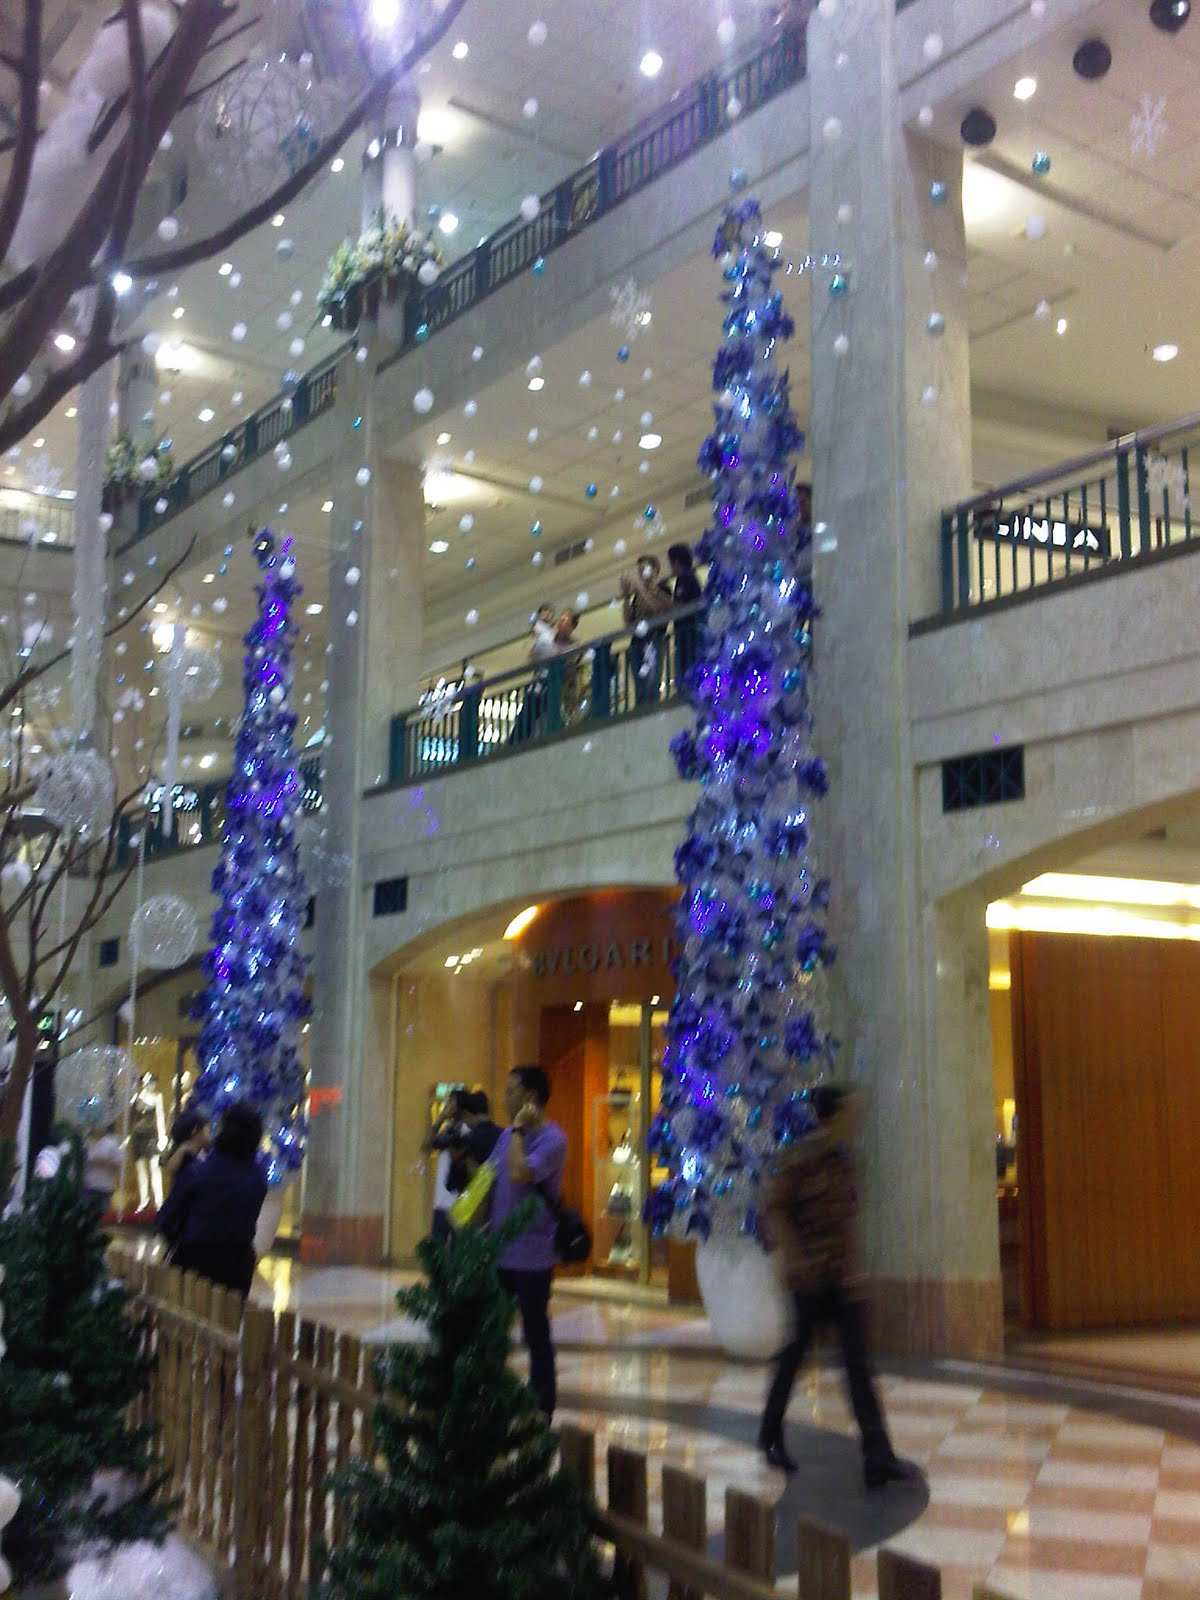 My journey, : Christmas decorations at the mall, South Jakarta 2011